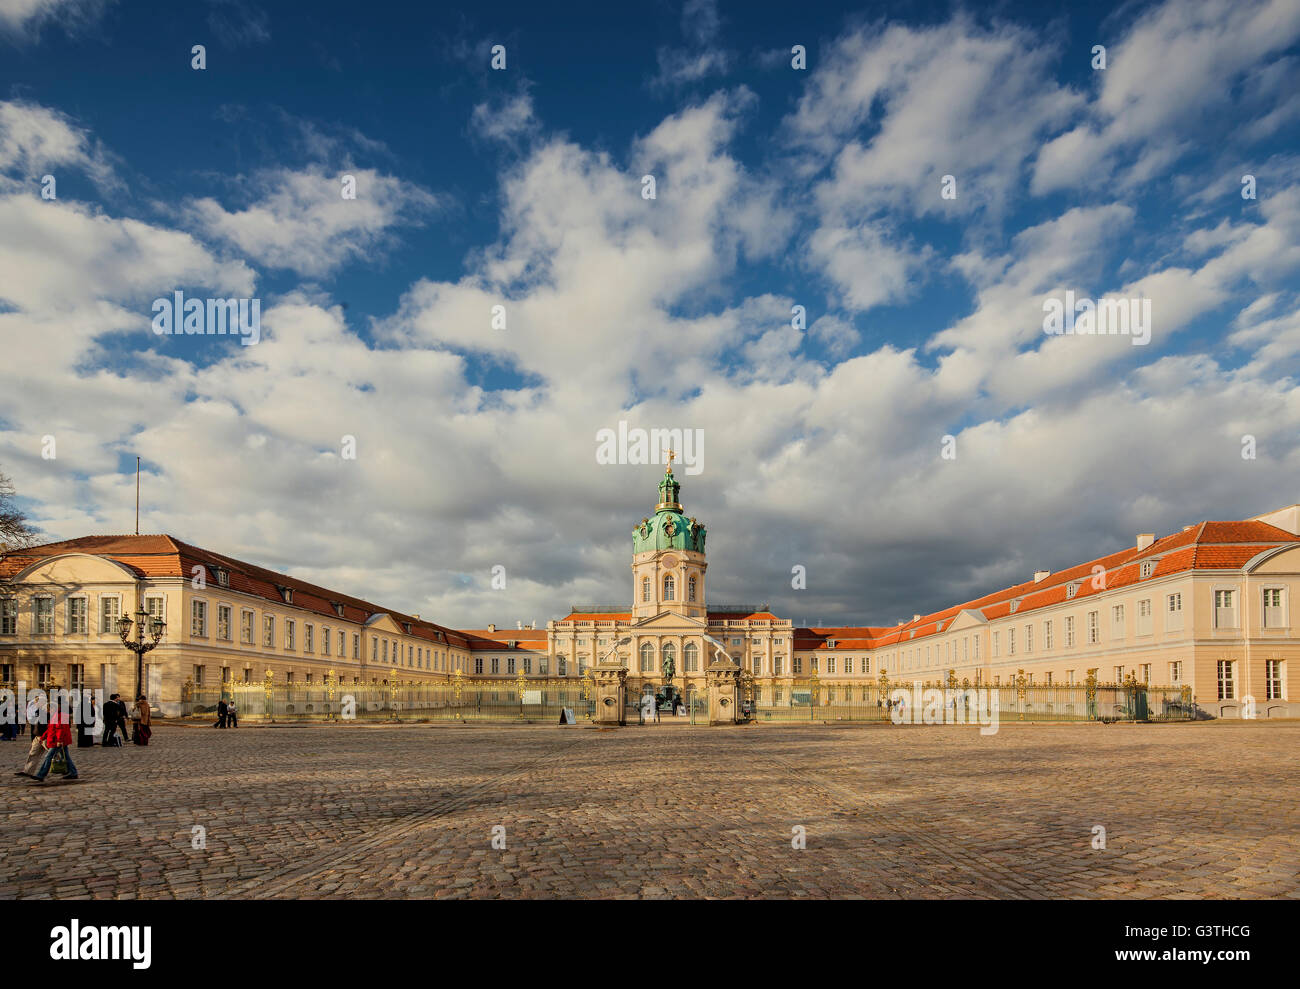 Germany, Berlin, Tyskland, View of Charlottenburg Palace - Stock Image